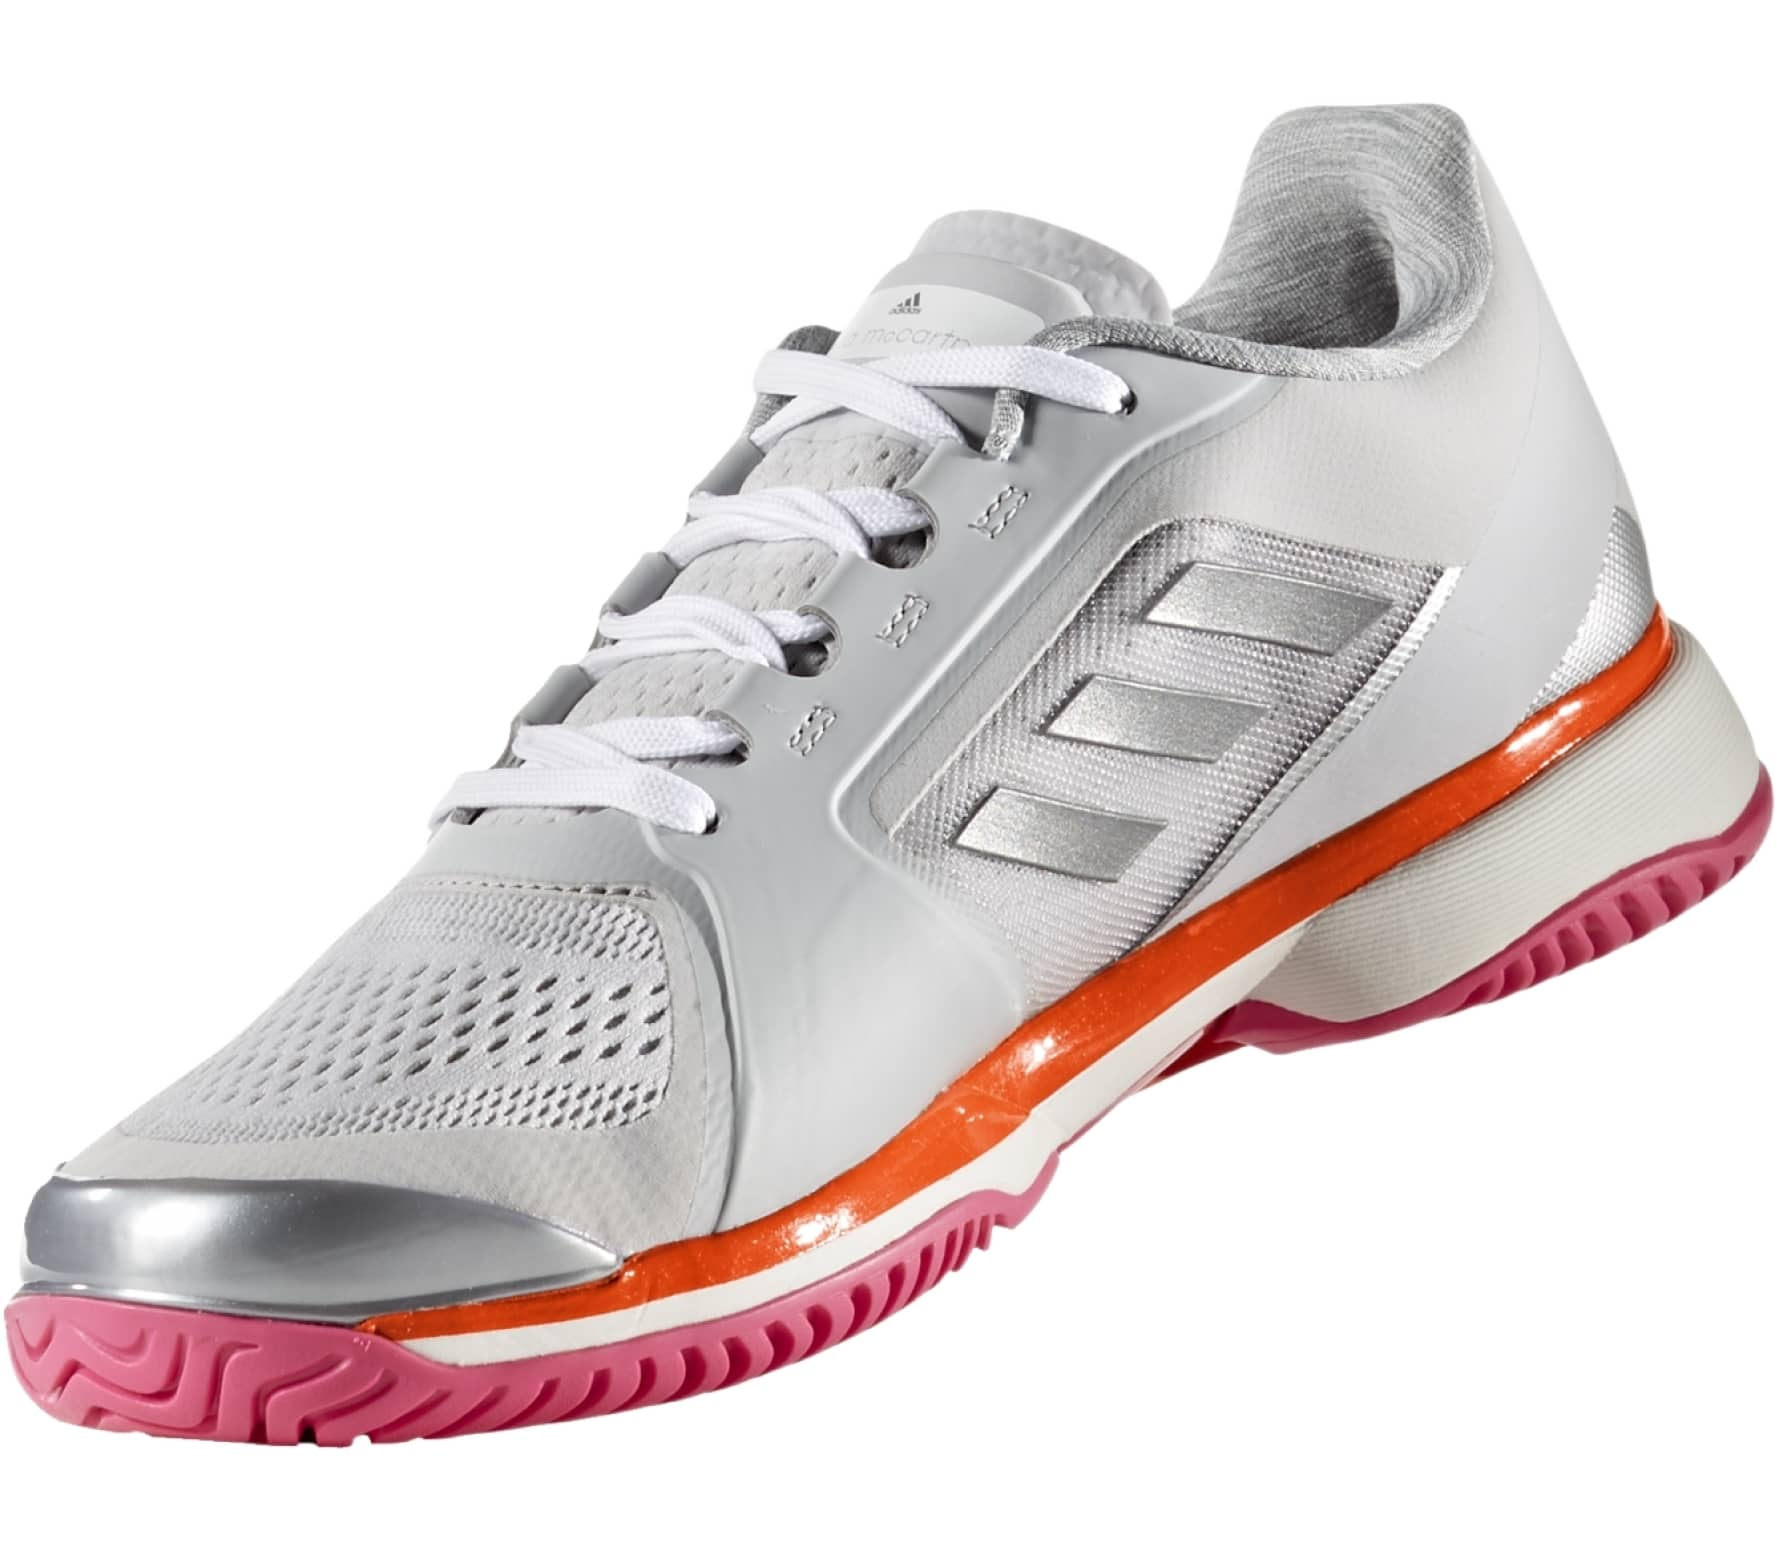 sports shoes 0c632 18f1a Adidas - aSMC Barricade 2017 womens tennis shoes (greypink)